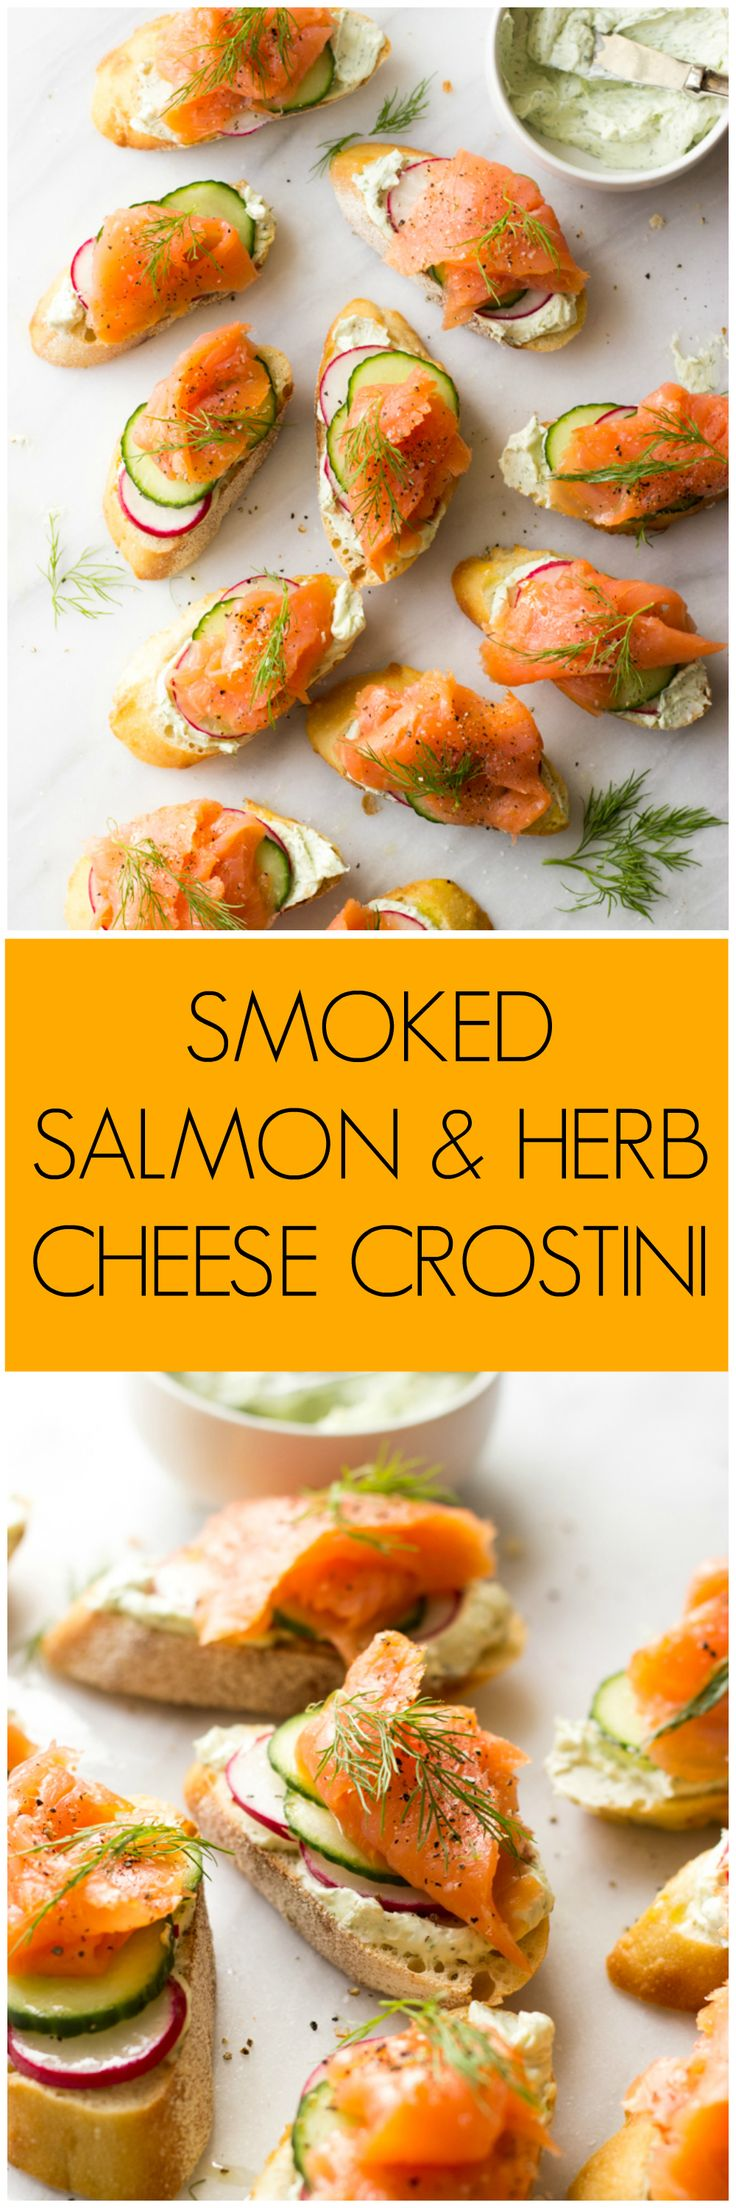 Smoked Salmon and Herb Cheese Crostini - easy and elegant appetizer to add to your holiday table! | littlebroken.com @littlebroken